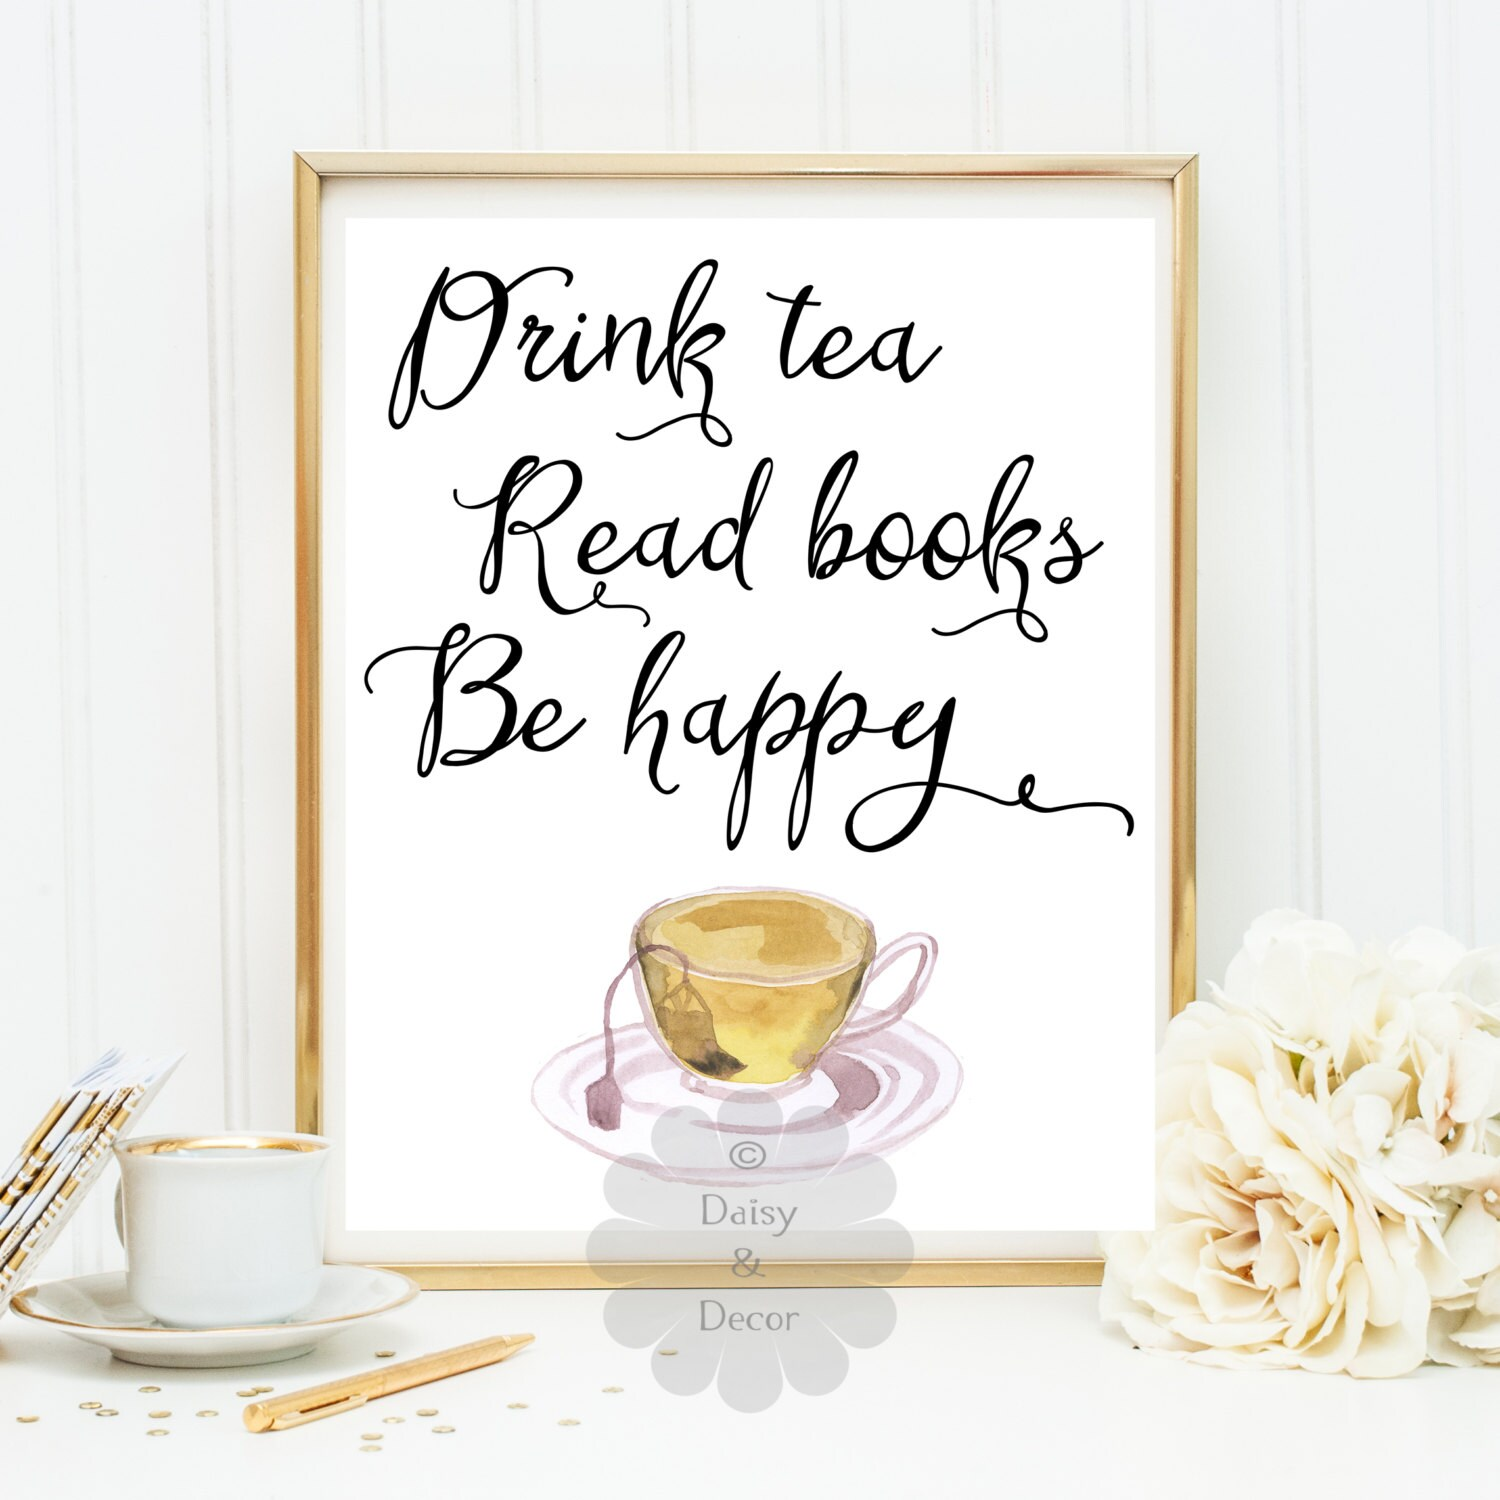 Kitchen Tea Quotes For Cards: Drink Tea Read Books Be Happy Printable Quote Kitchen Tea Art